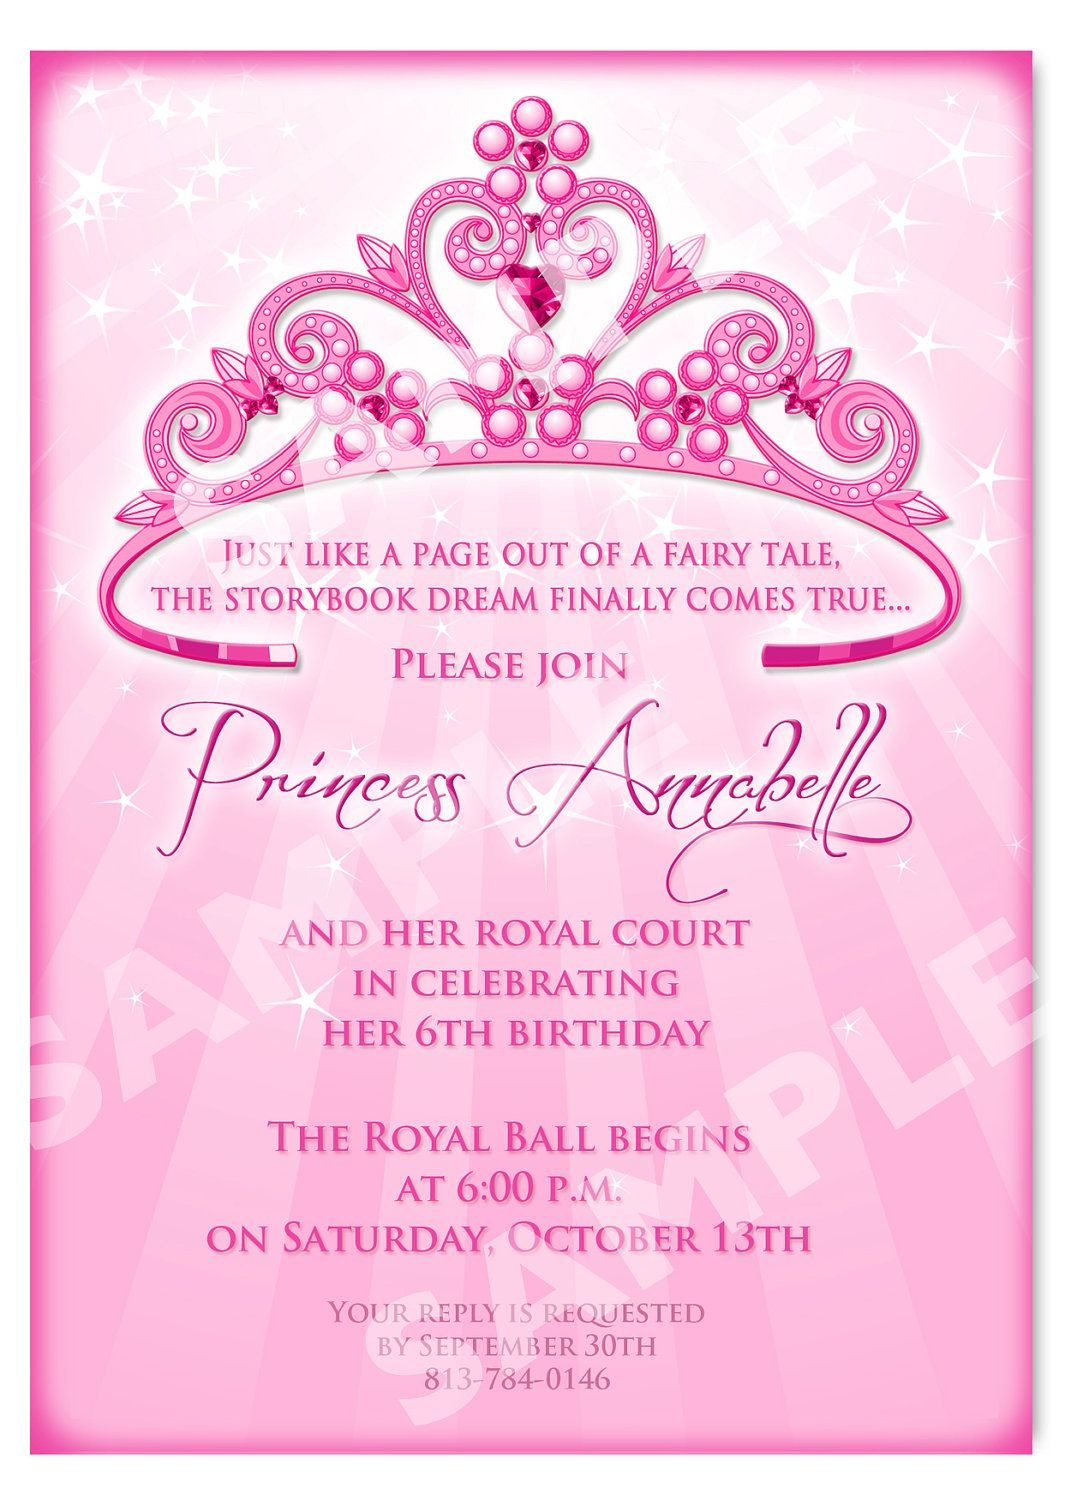 Free Printable Princess Birthday Invitation Templates | Kids - Free Printable Princess Invitation Cards